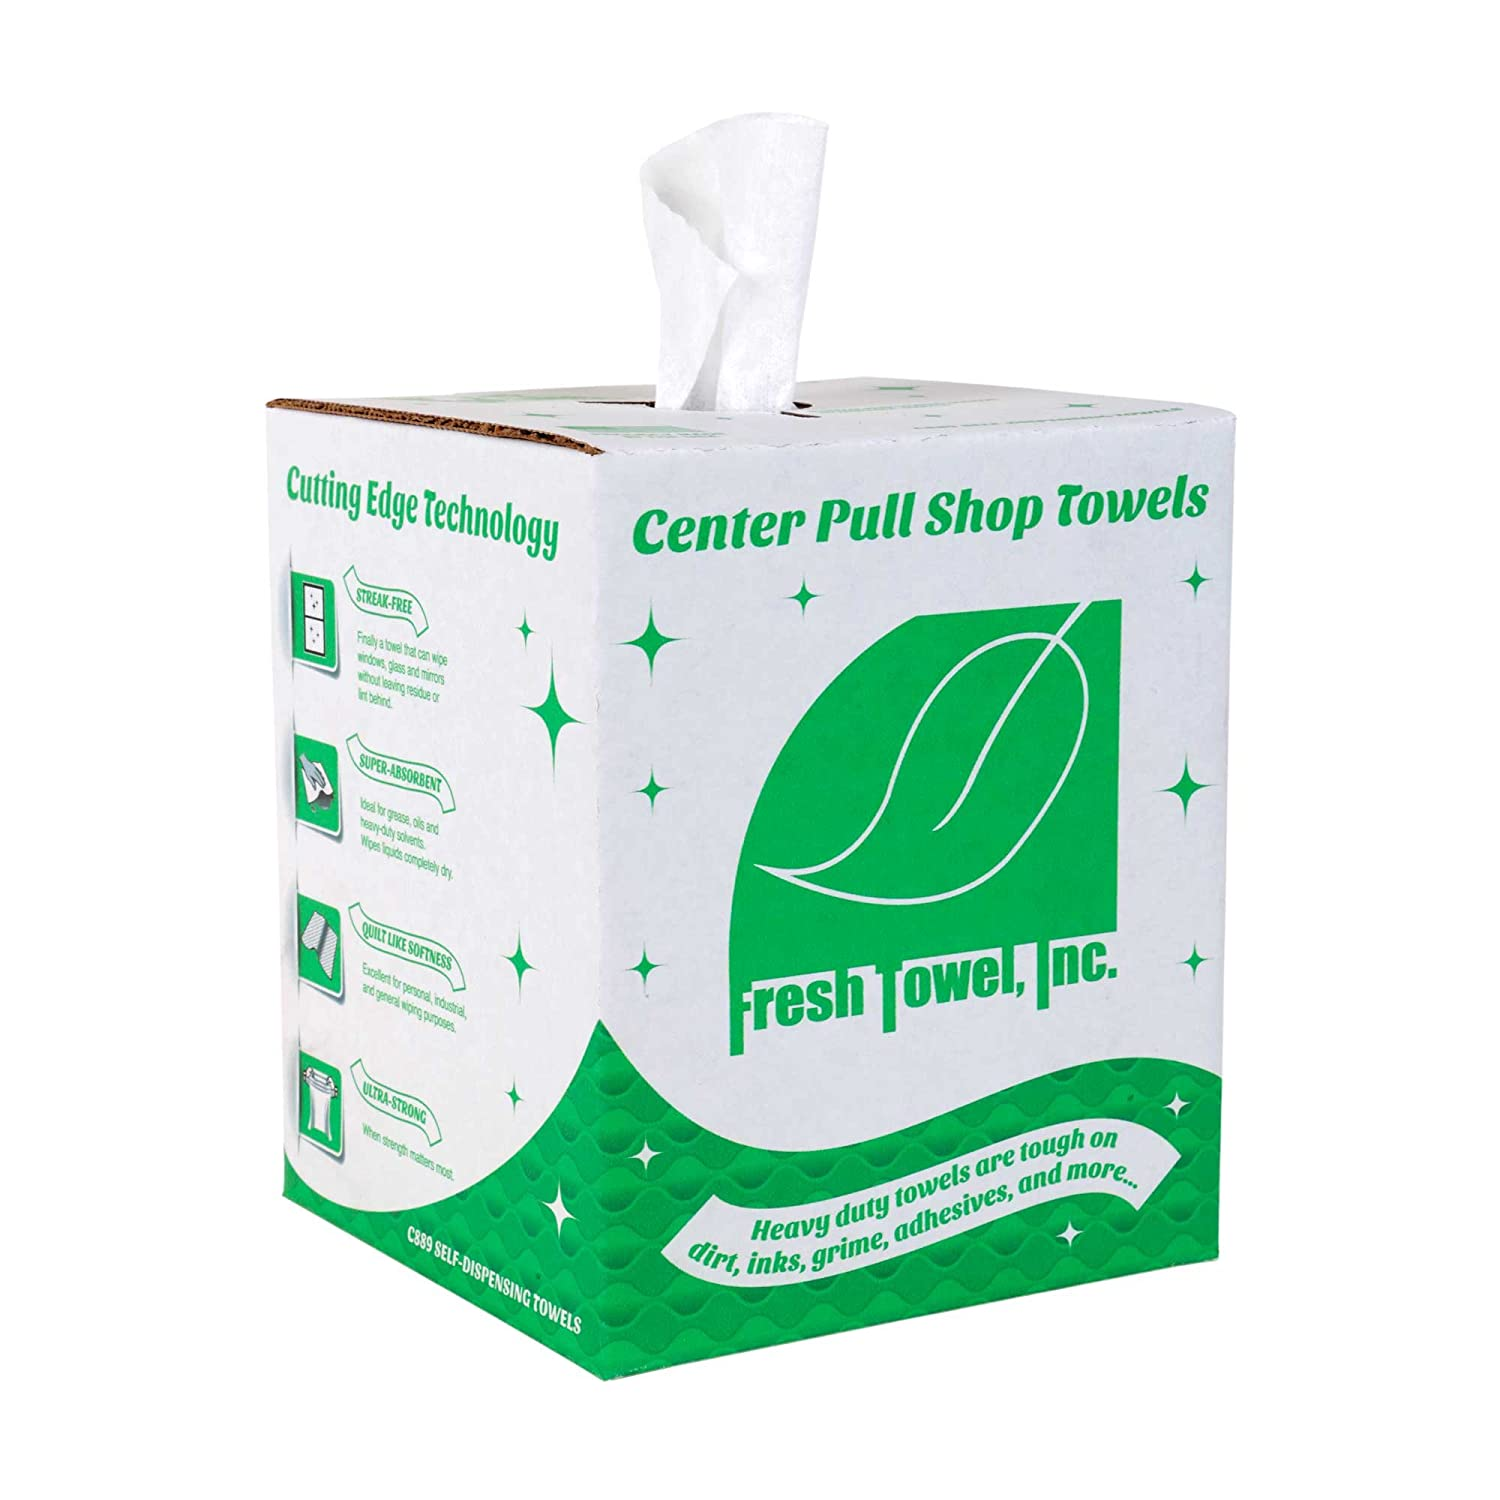 Fresh Towel Ultra Strong Center Pull Shop Towels - (1 Box of 300) Disposable Cleaning Towels - White, 9 x 12 inches - FT500